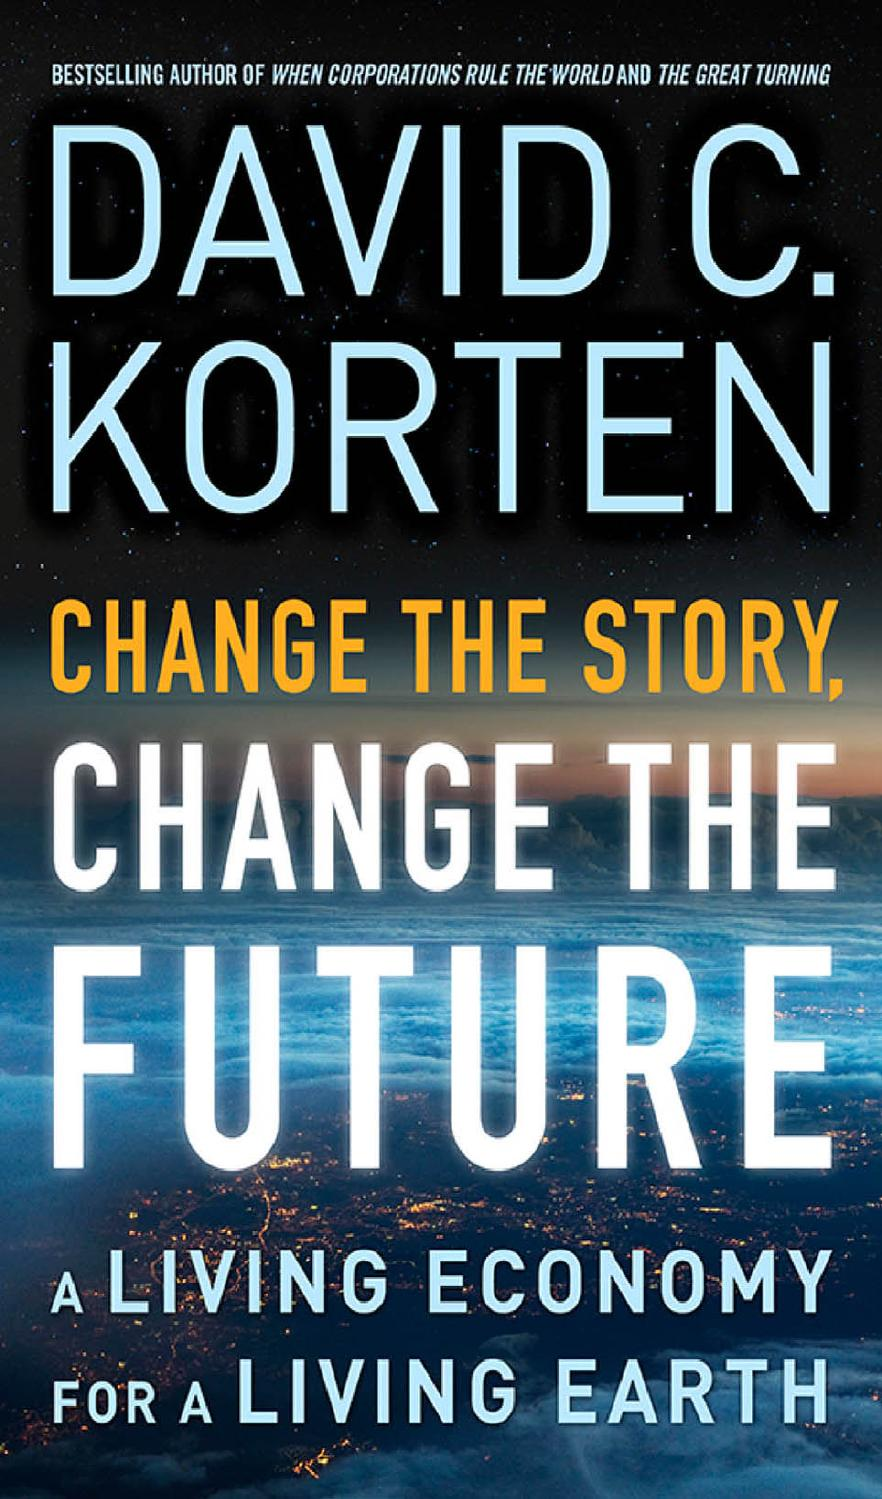 David Korten  Change The Story, Change The Future Full Book Pdf Download  By Local Money  Issuu